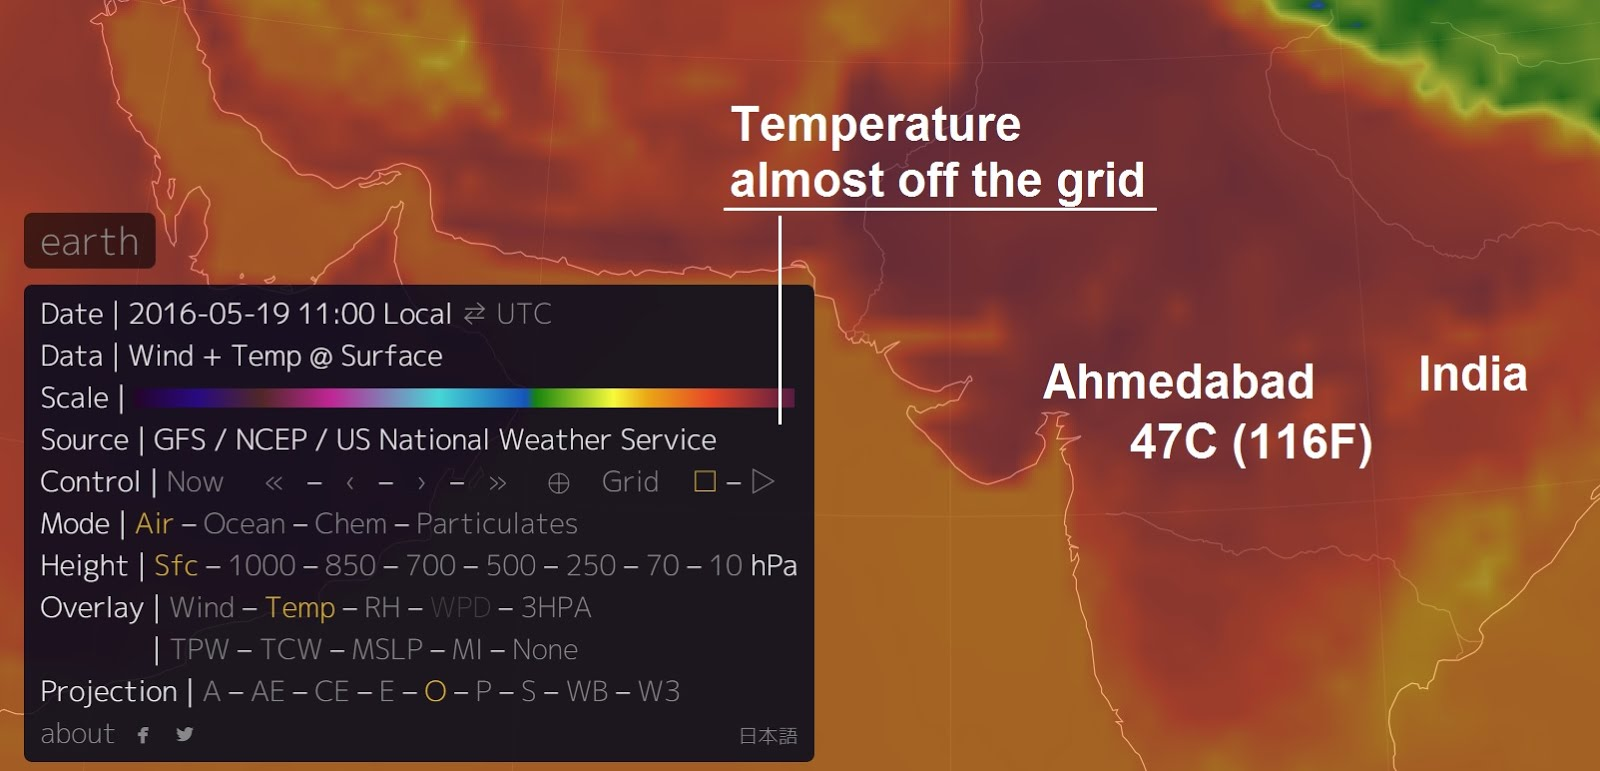 Parts of India break 100 year old heat record as temperatures hit 47.8 degrees Celsius